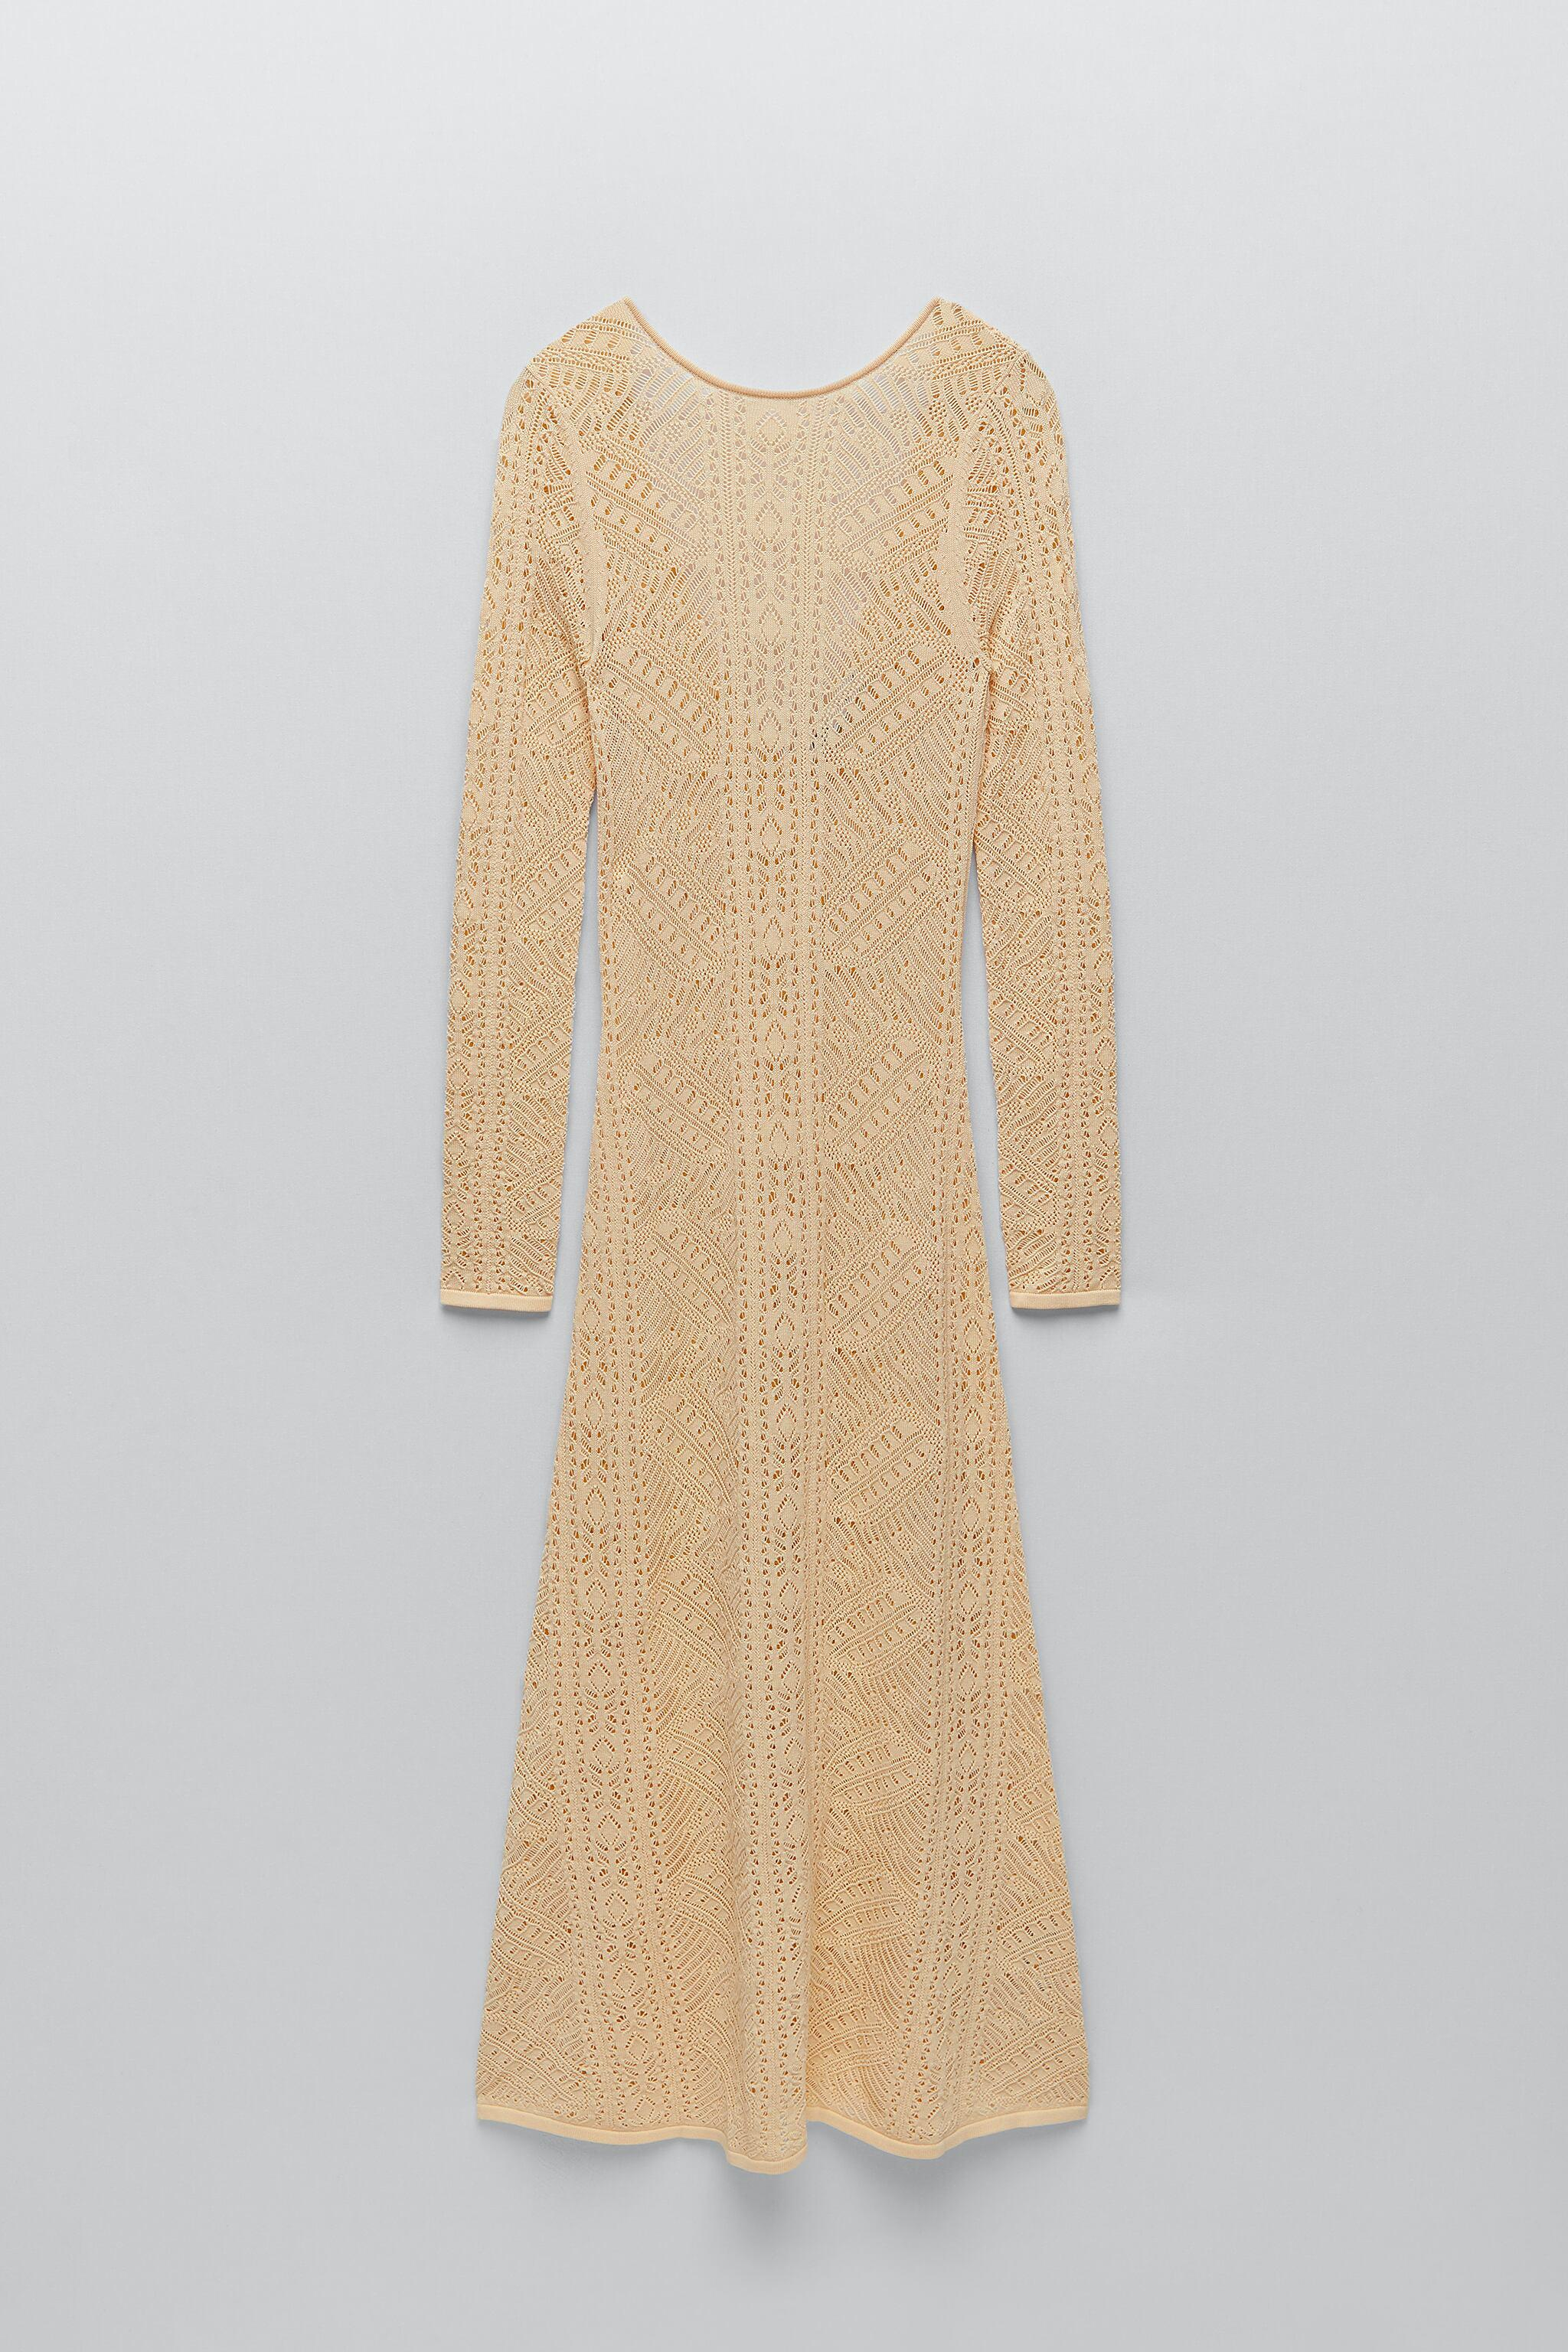 POINTELLE KNIT DRESS LIMITED EDITION 2